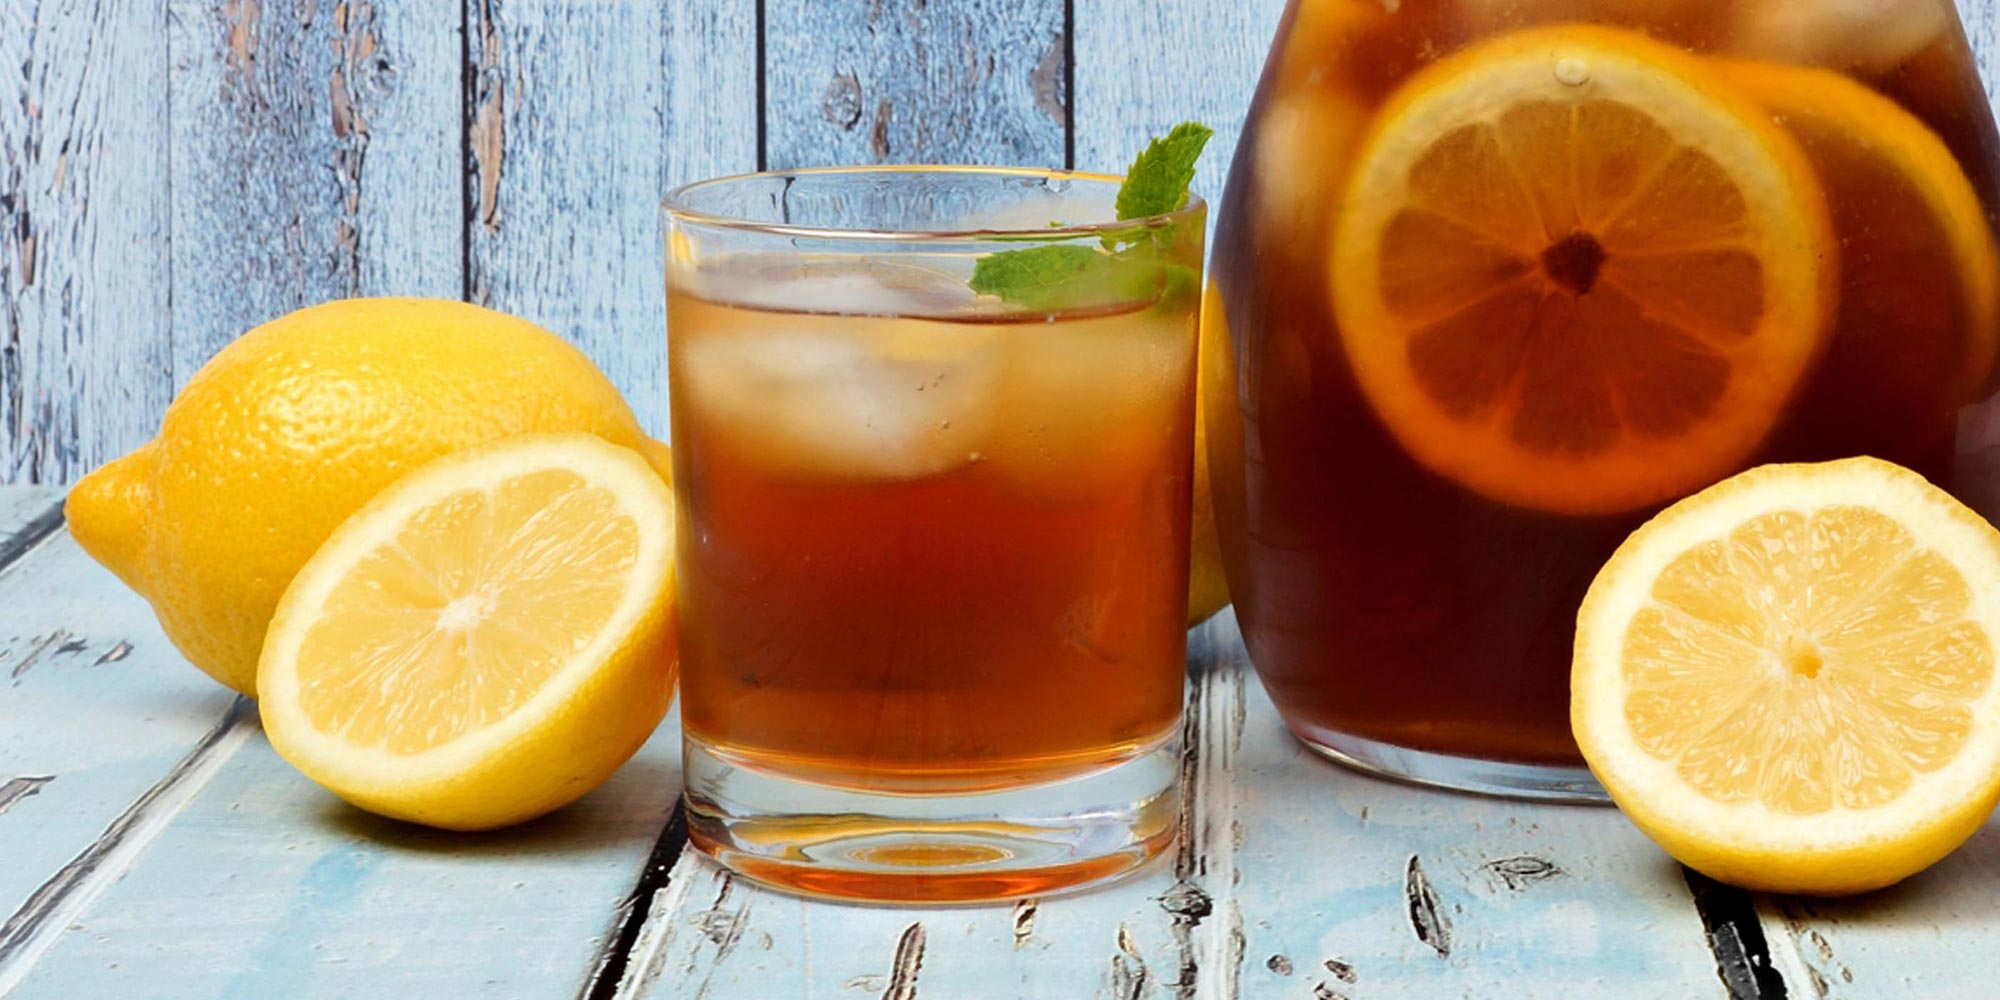 Southern Sweet Tea Recipe No Calorie Sweetener Sugar Substitute Splenda Sweeteners